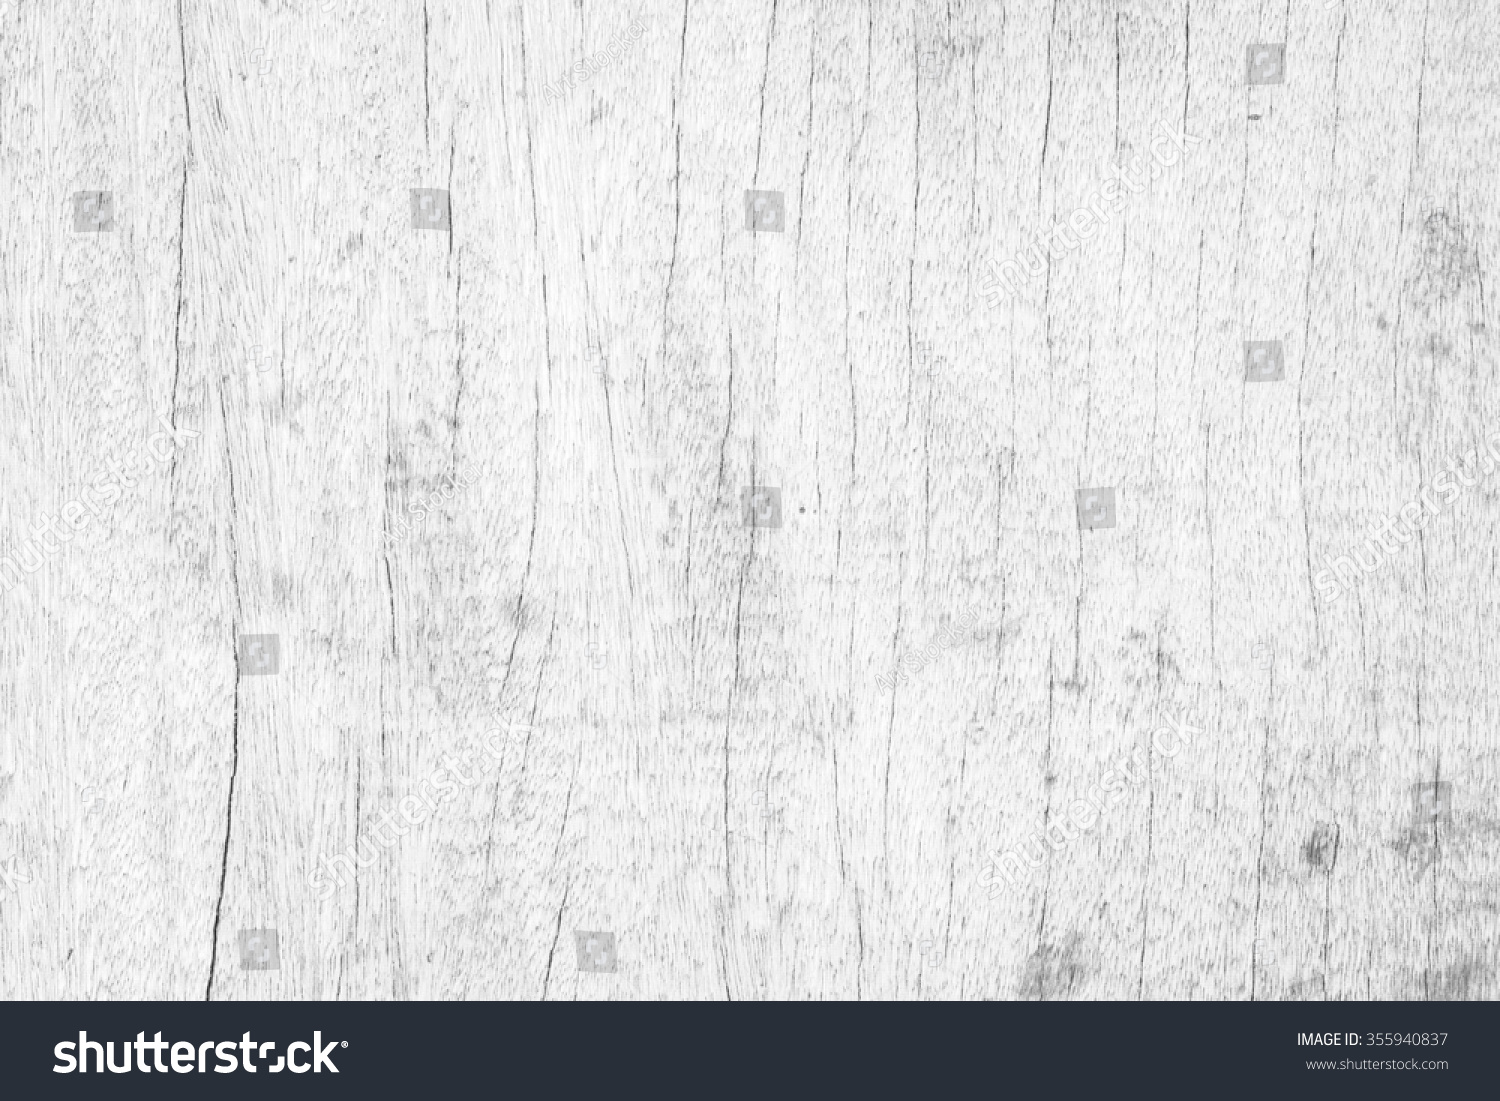 Table Top View Of Birch Wood Texture Over White Light Seamless Background Grey Clean Grain Wooden Desk Bleached Rustic Grunge Bacground With Rough Board